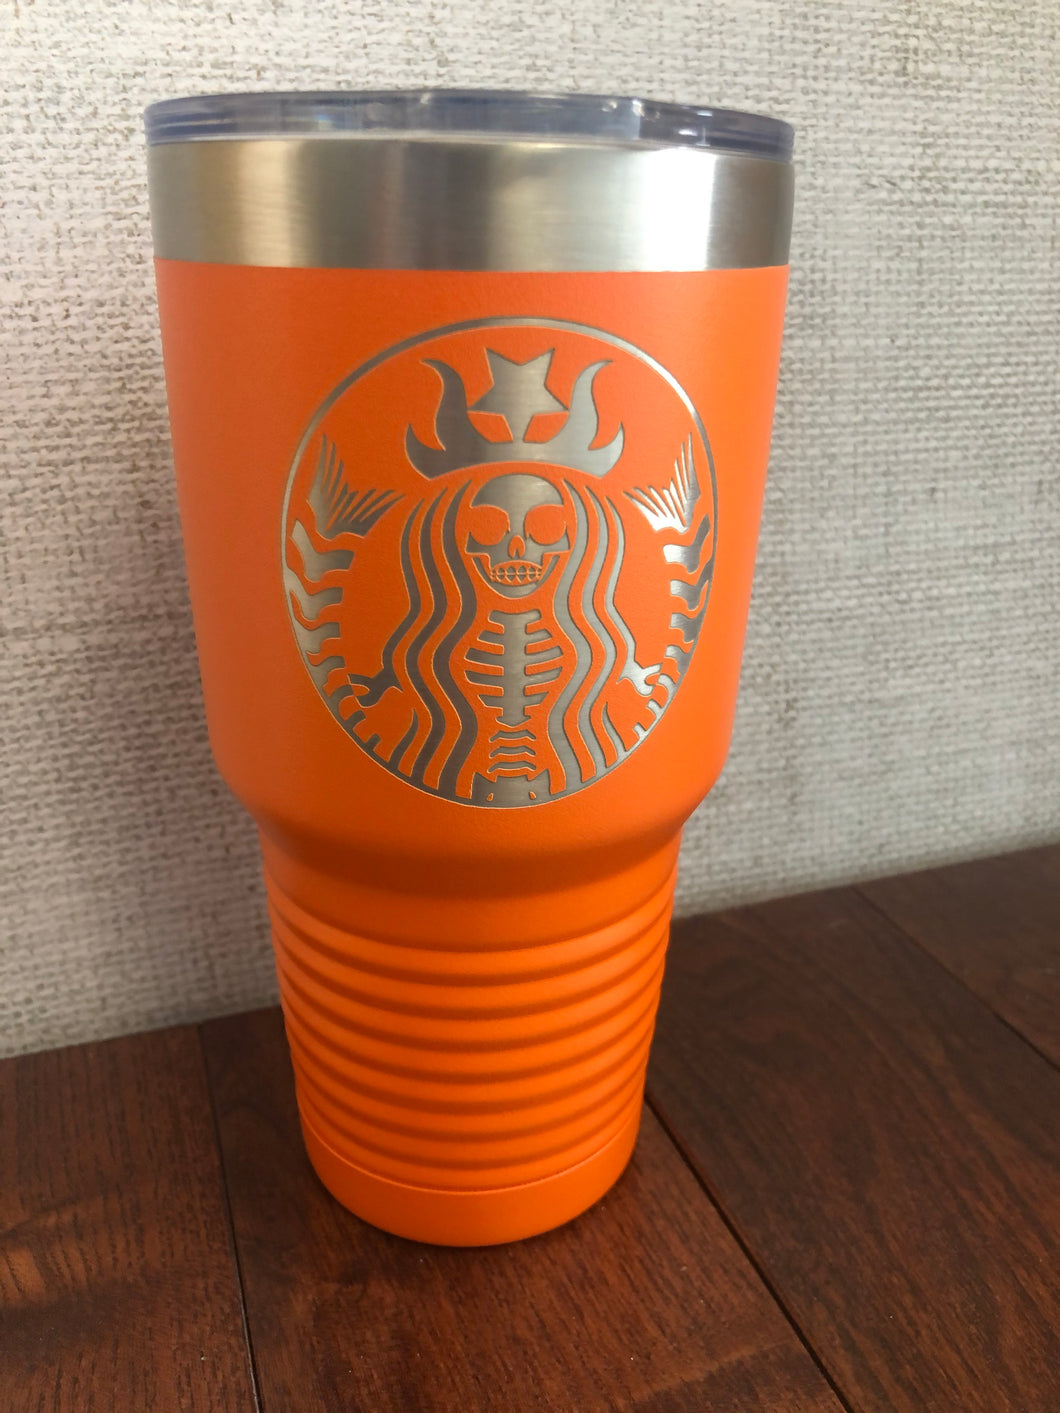 Skele-Starbucks 30oz Tumbler